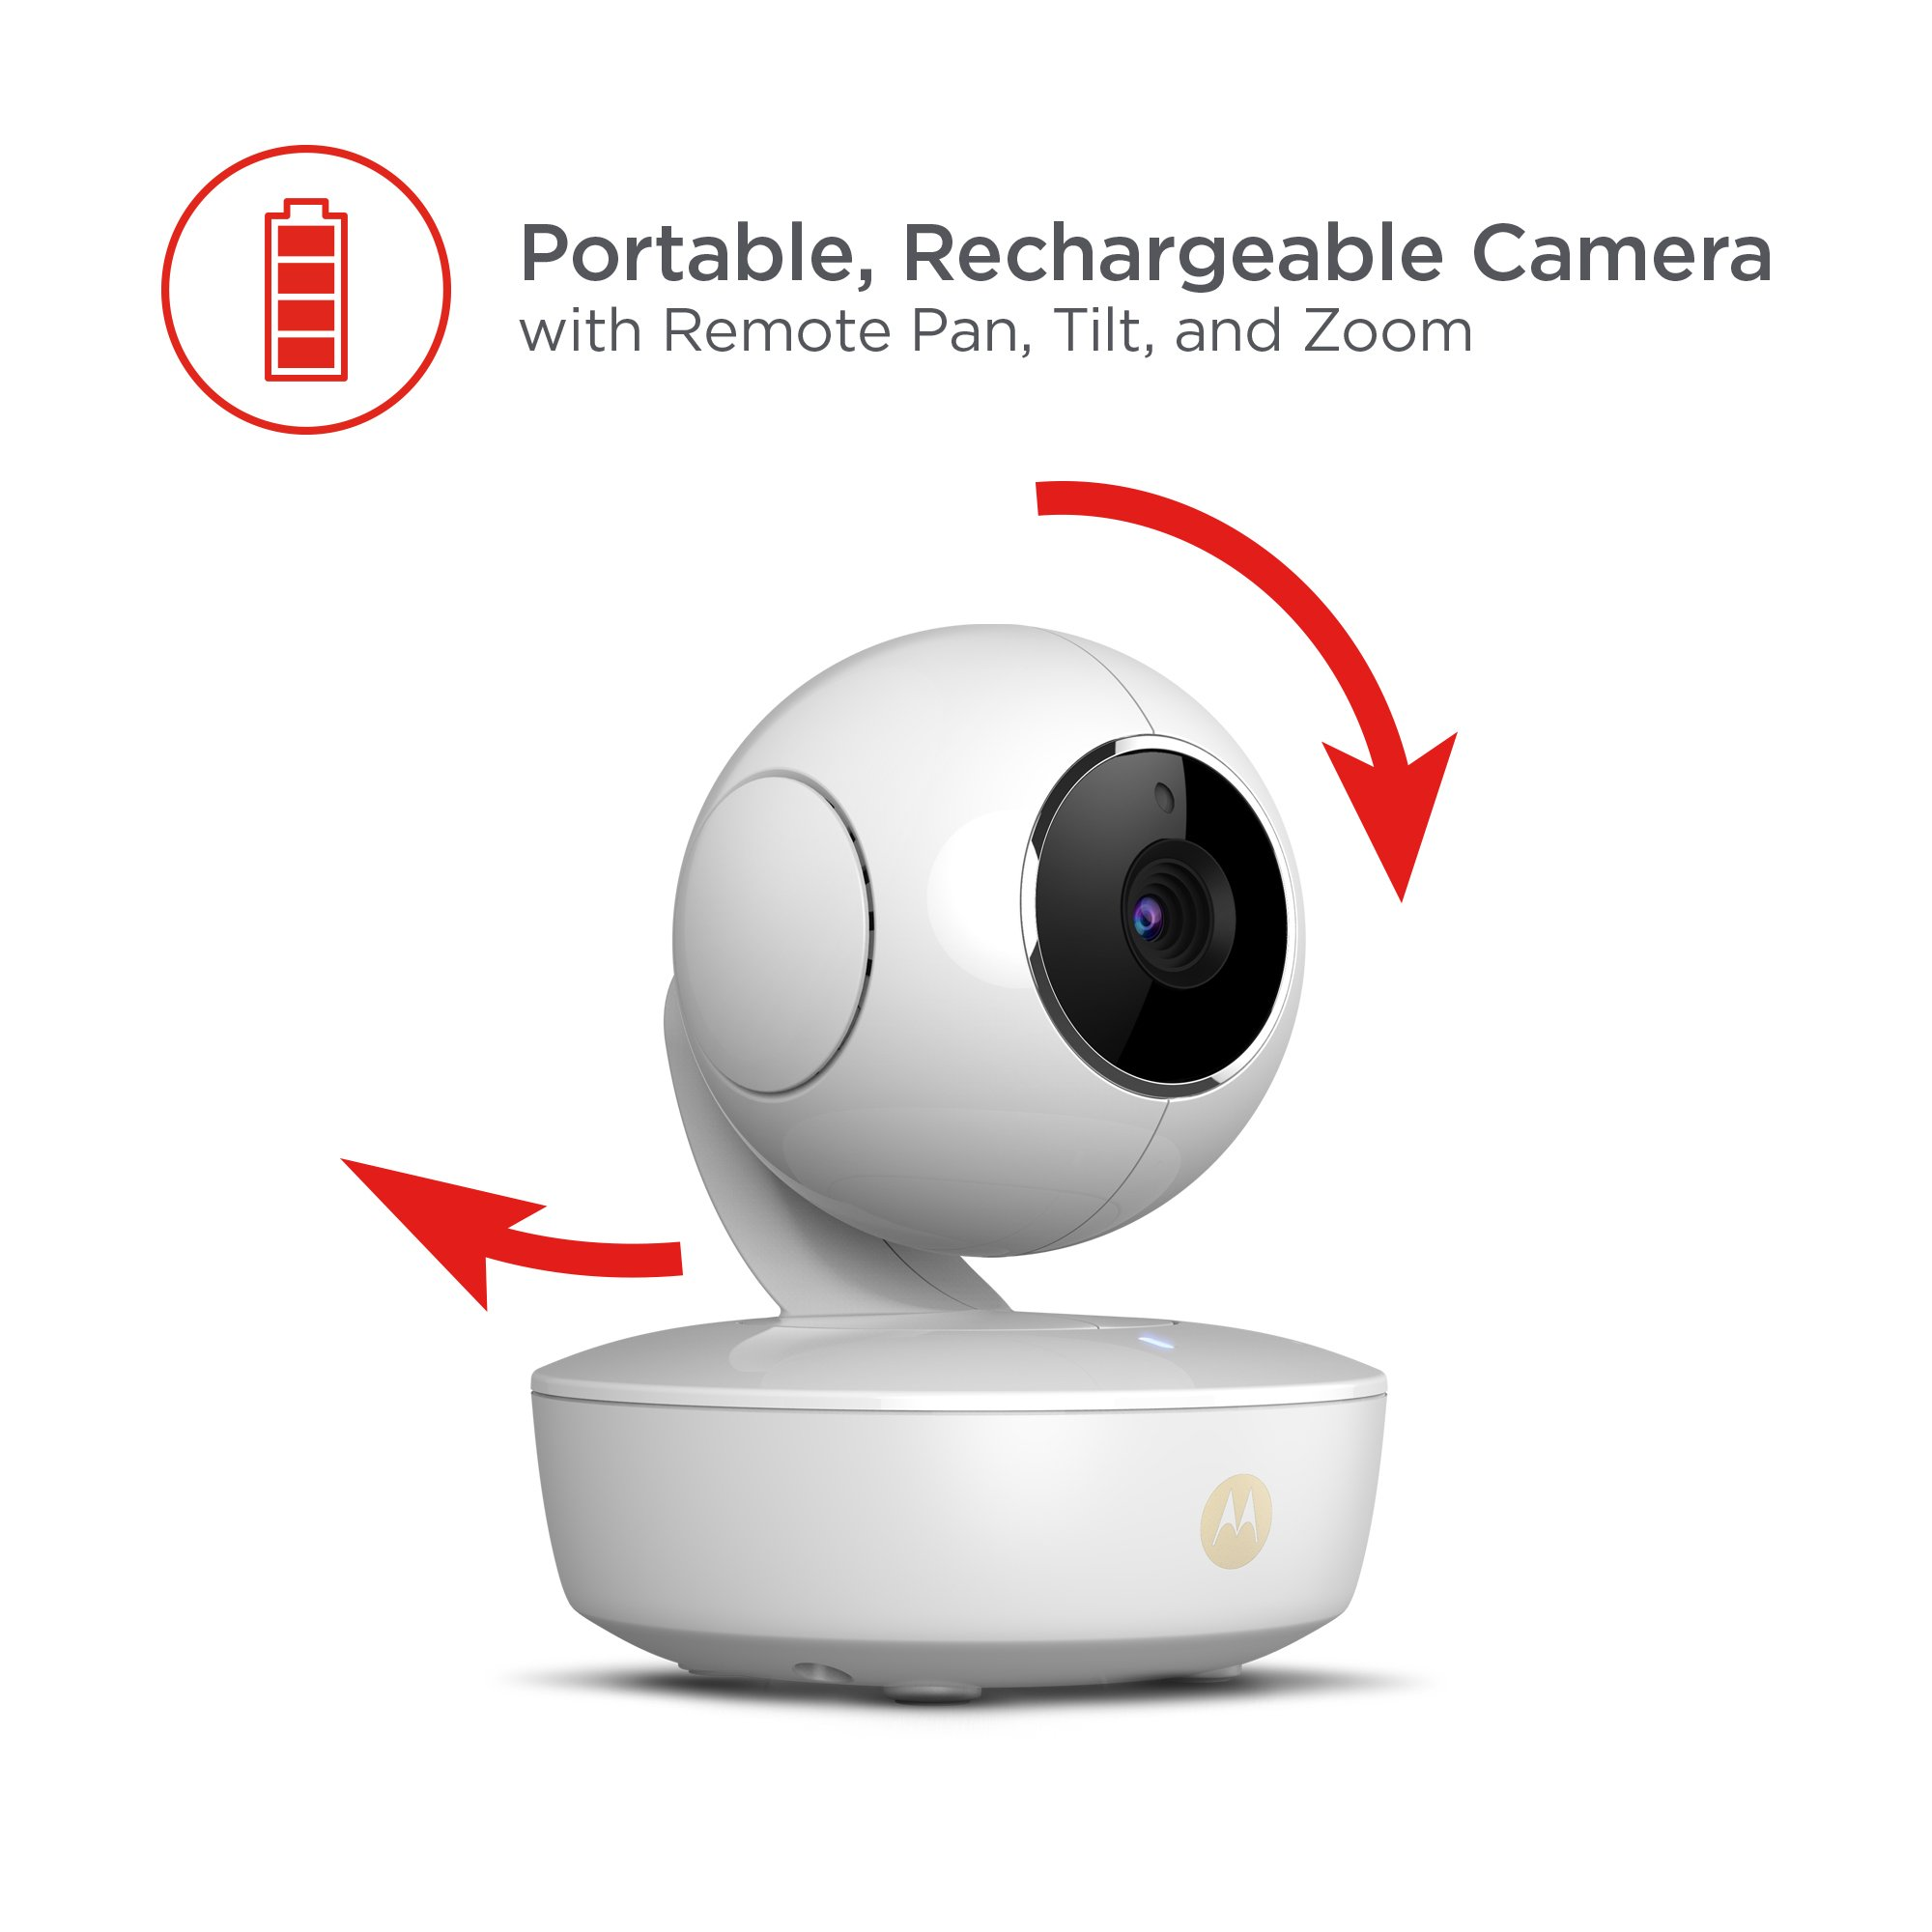 Motorola MBP36XL-2 Portable Video Baby Monitor, 5-inch Color Screen, 2 Rechargeable Cameras with Remote Pan, Tilt, and Zoom, Two-Way Audio, and Room Temperature Display by Motorola Baby (Image #3)